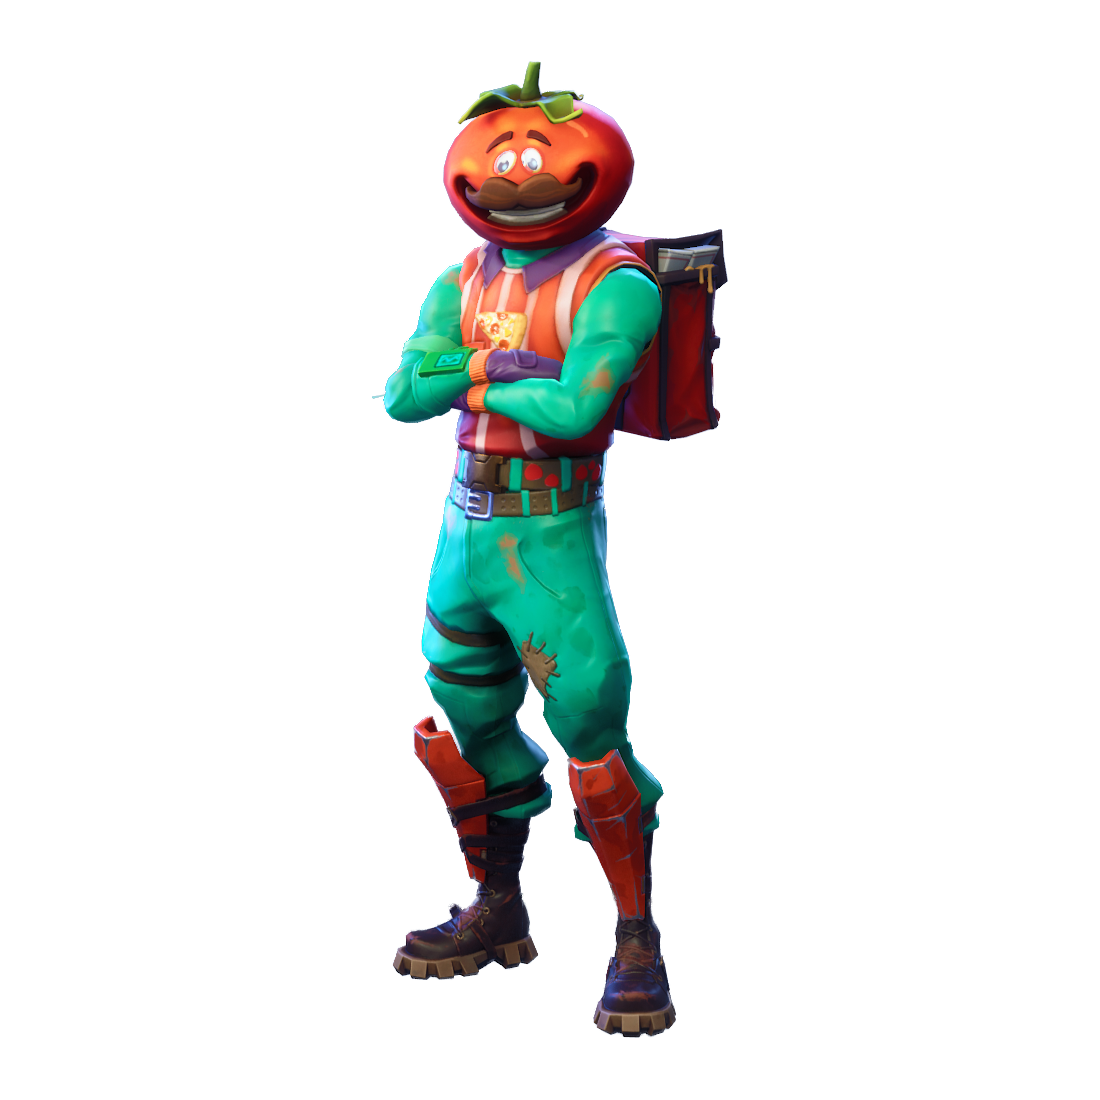 Télécharger photo fortnite tomato head png